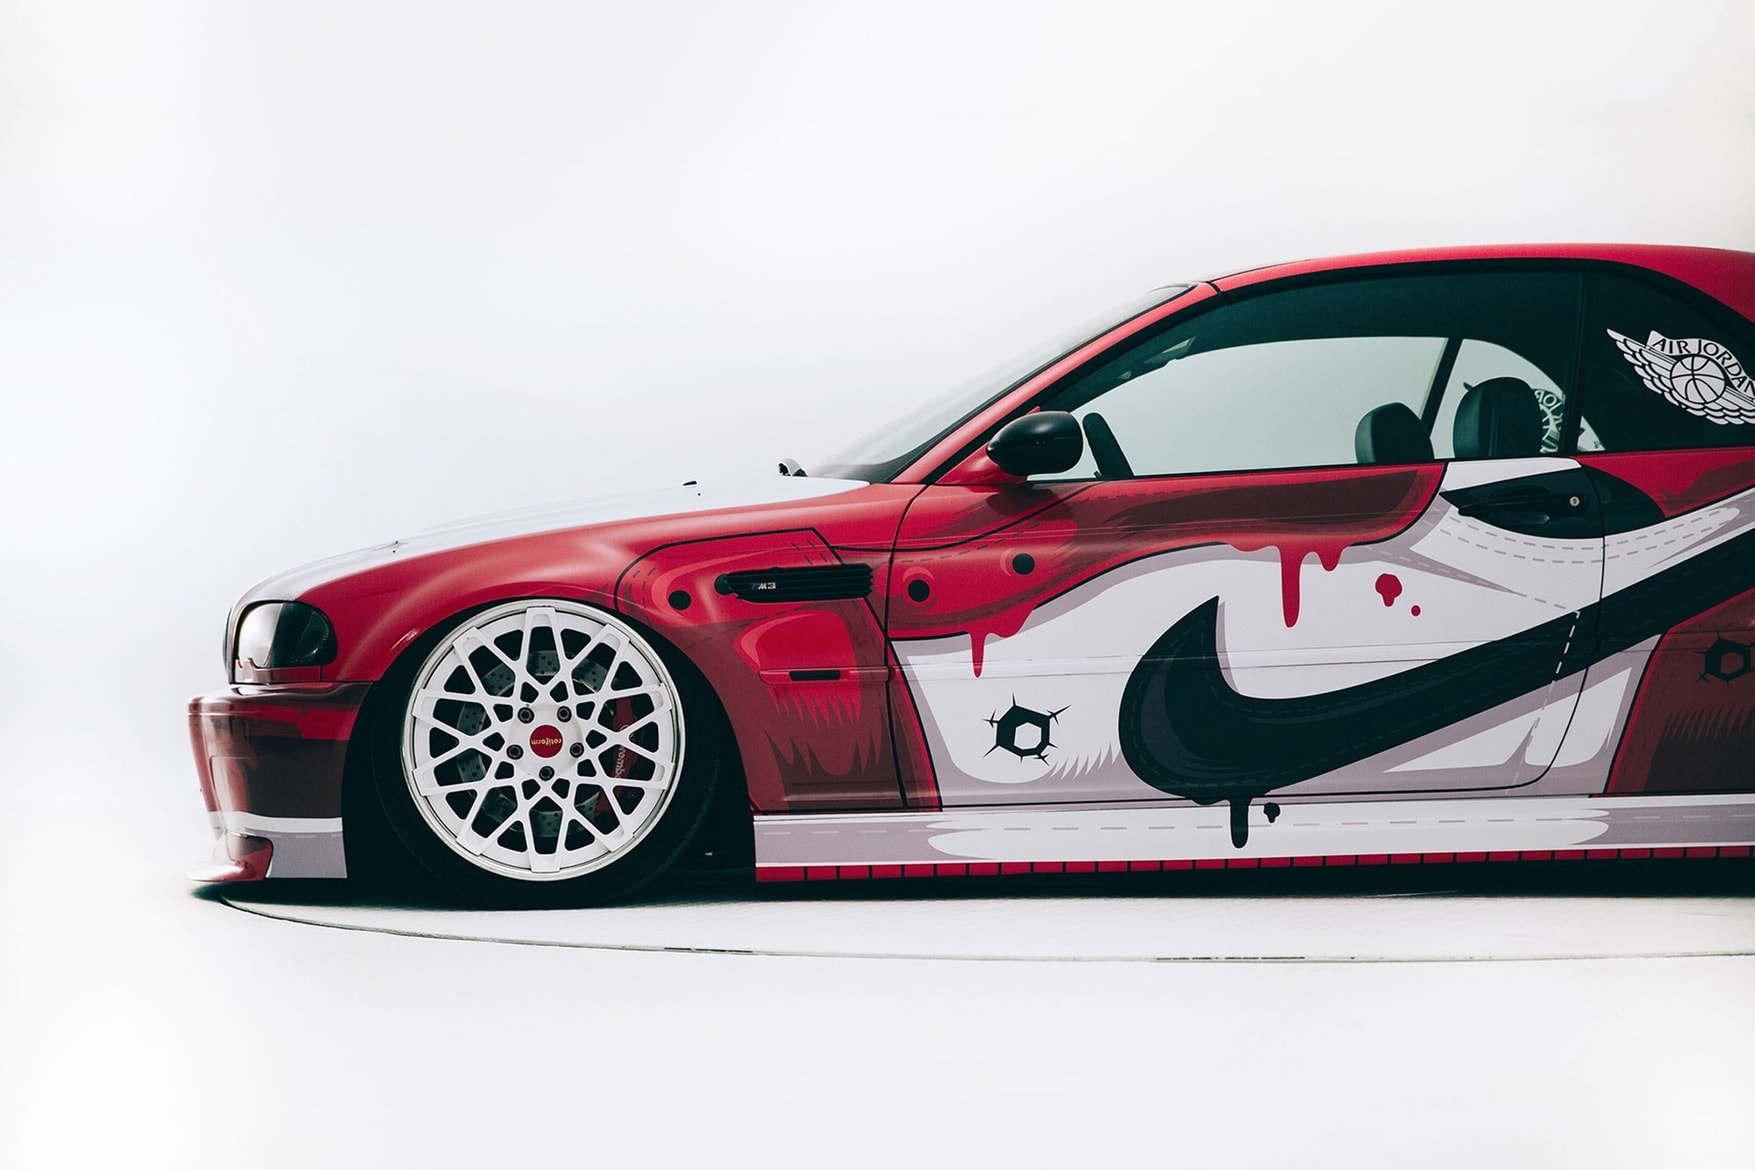 Air Jordan 1 Custom BMW (2)